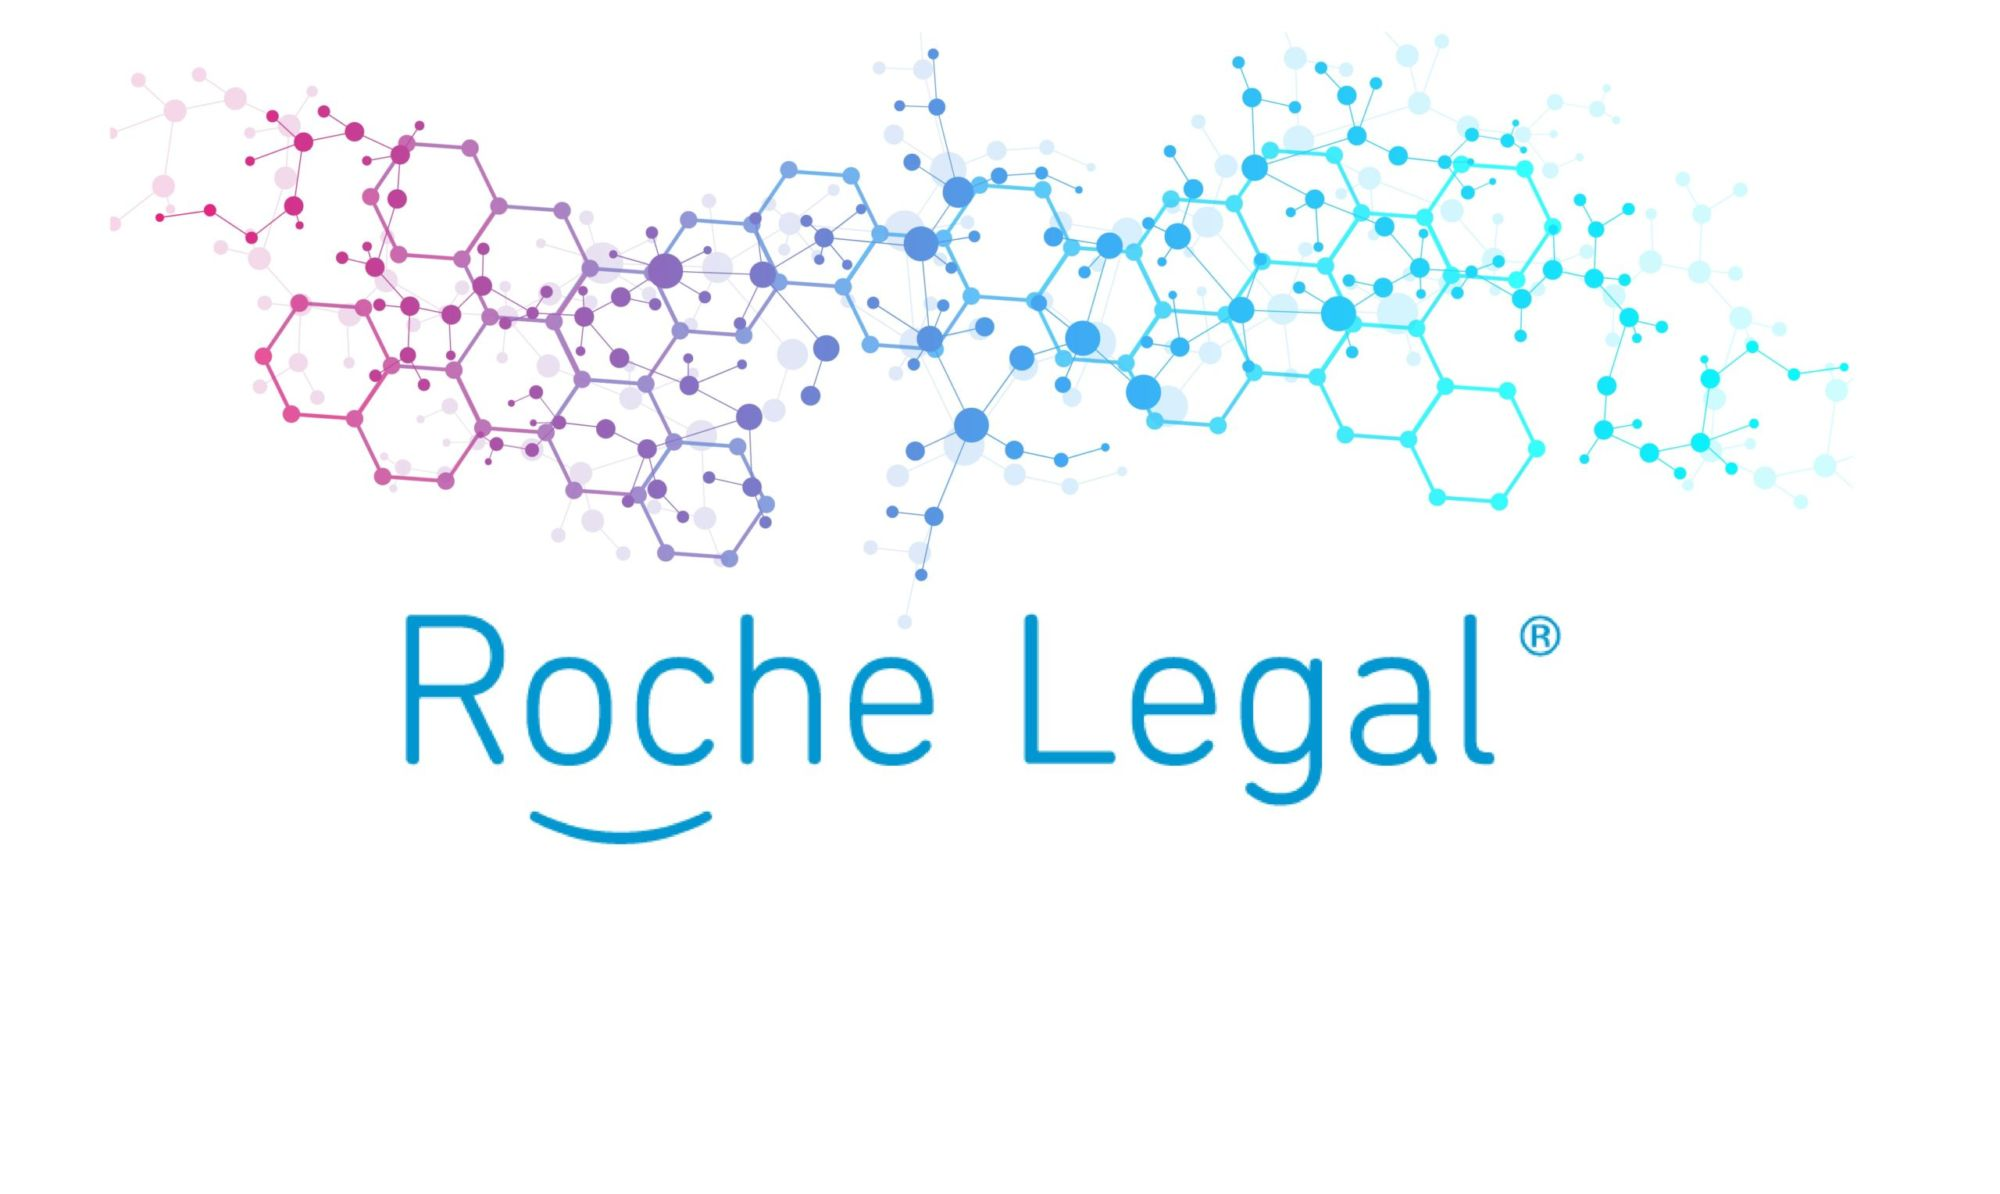 Roche Legal - DNA with logo